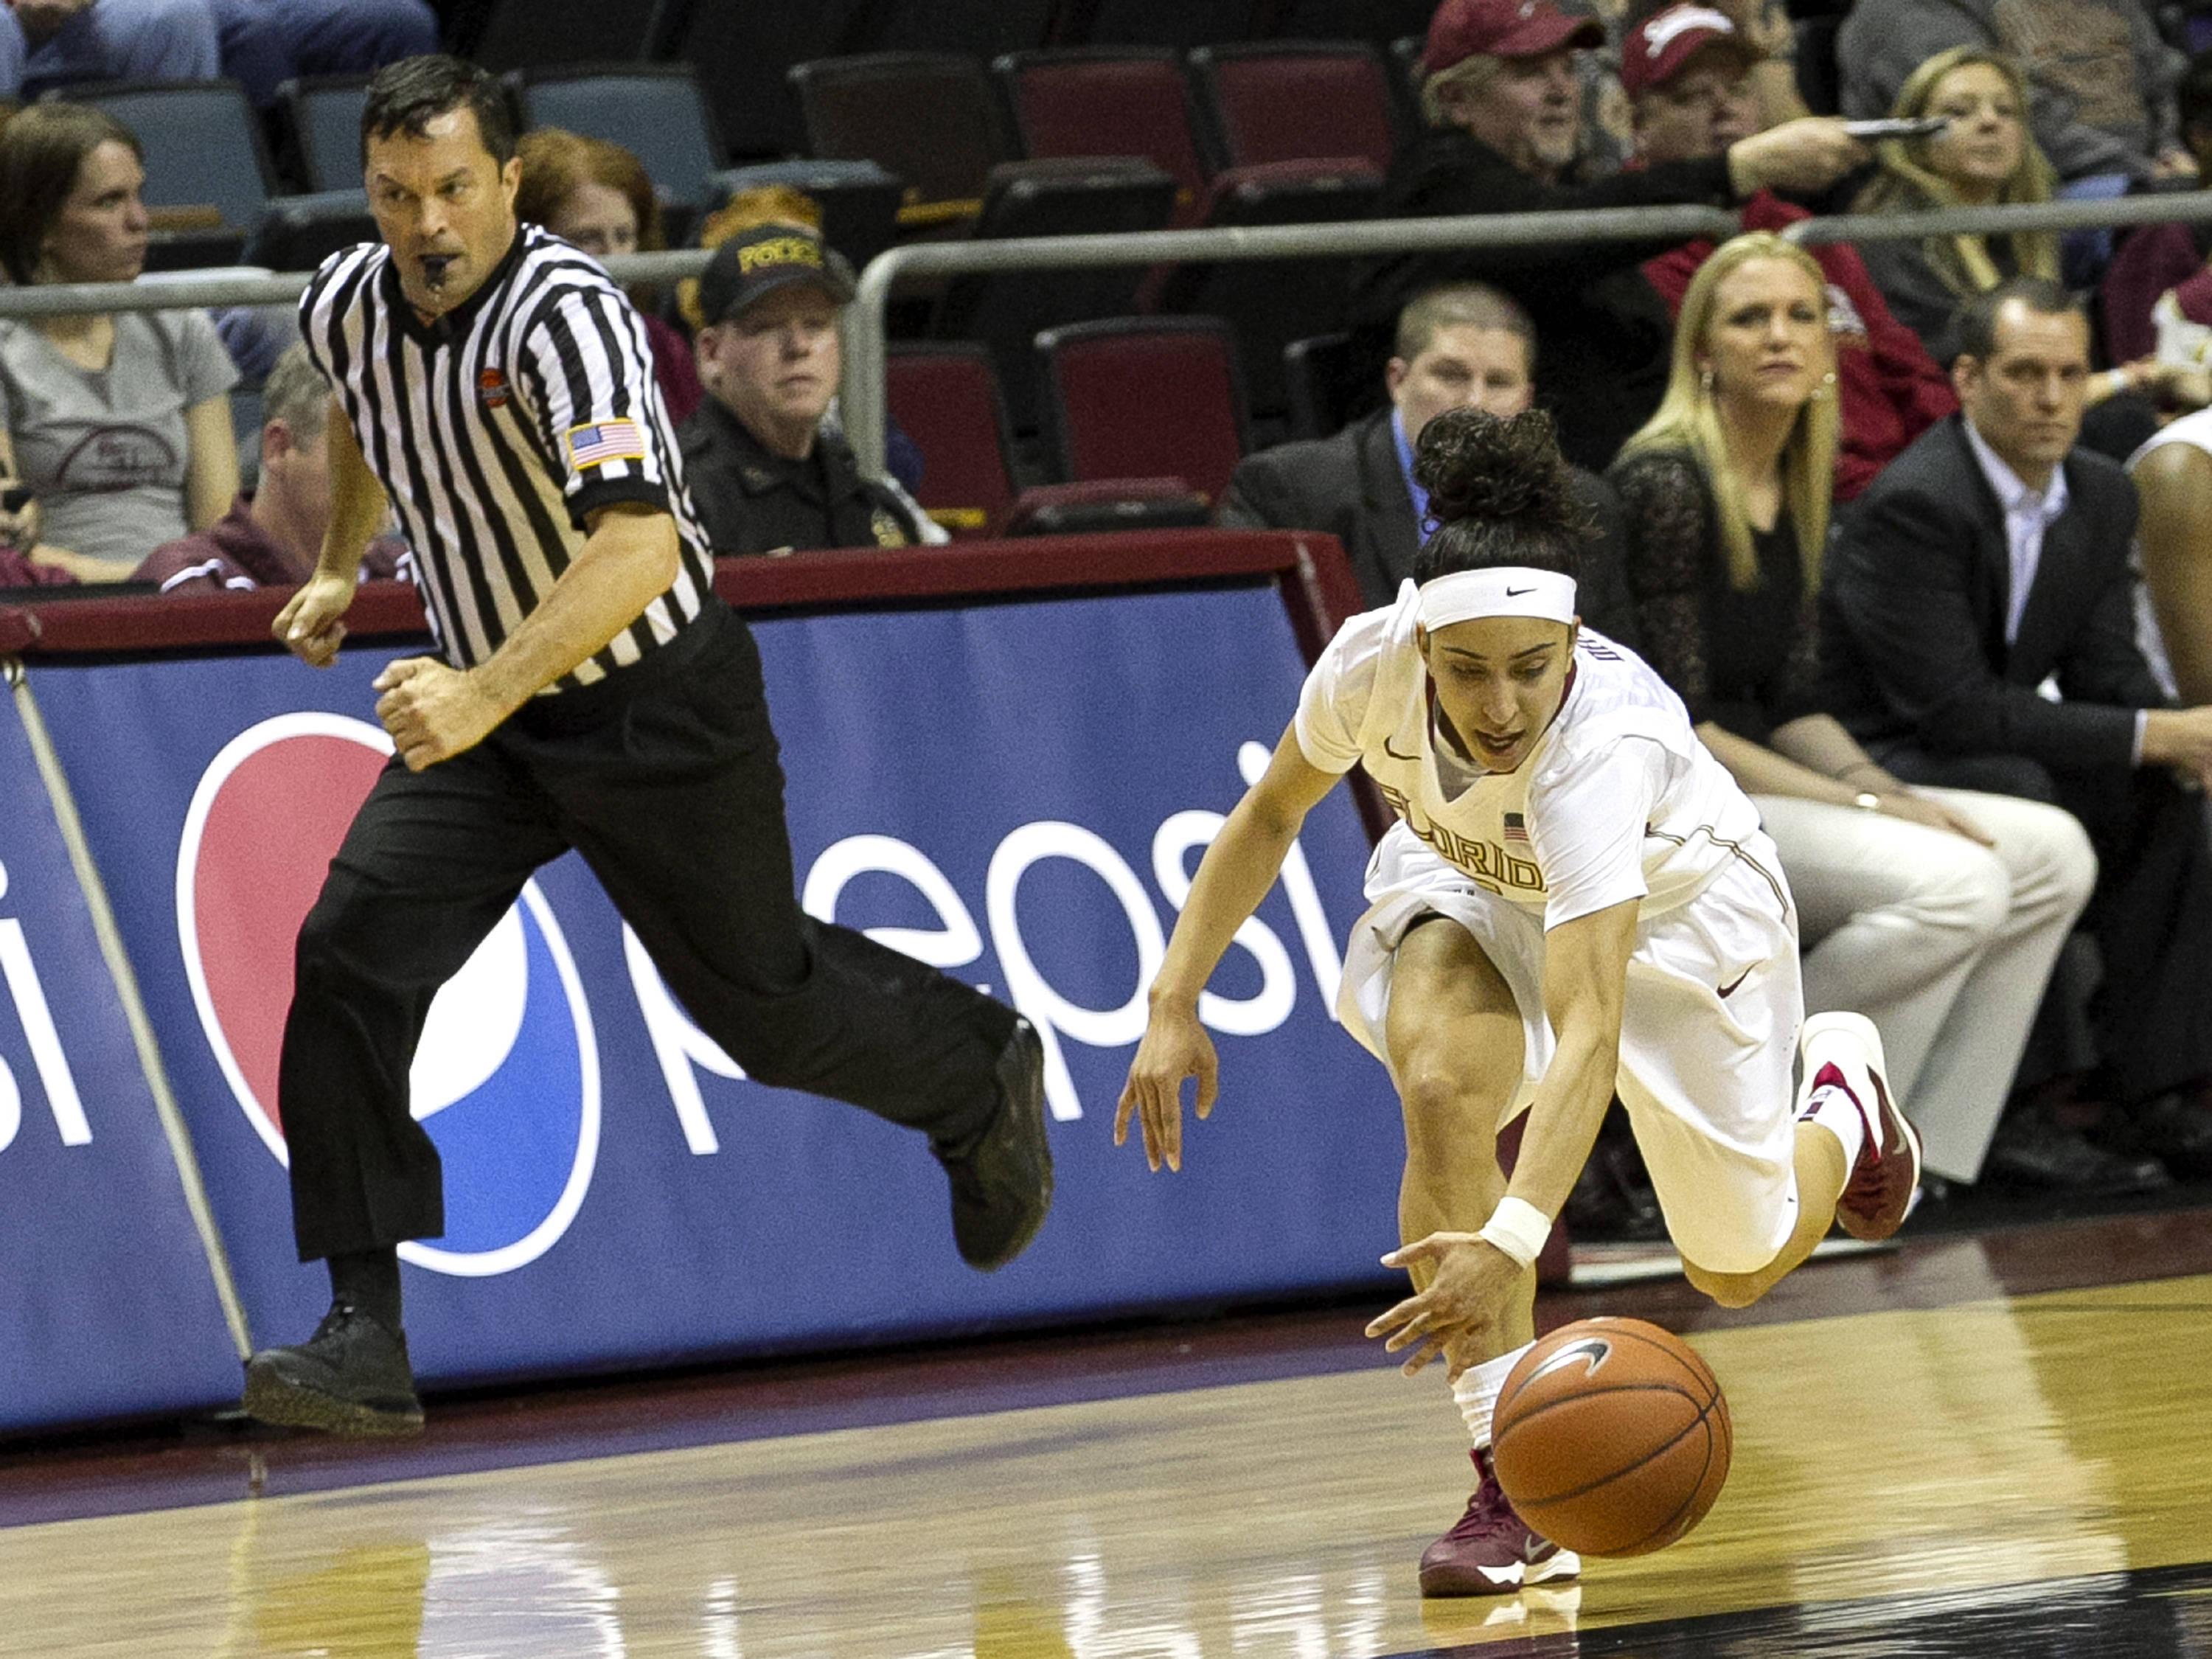 Cheetah Delgado (5) goes low to pick up a steal, FSU vs Notre Dame, 2-06-14, (Photo's by Steve Musco)